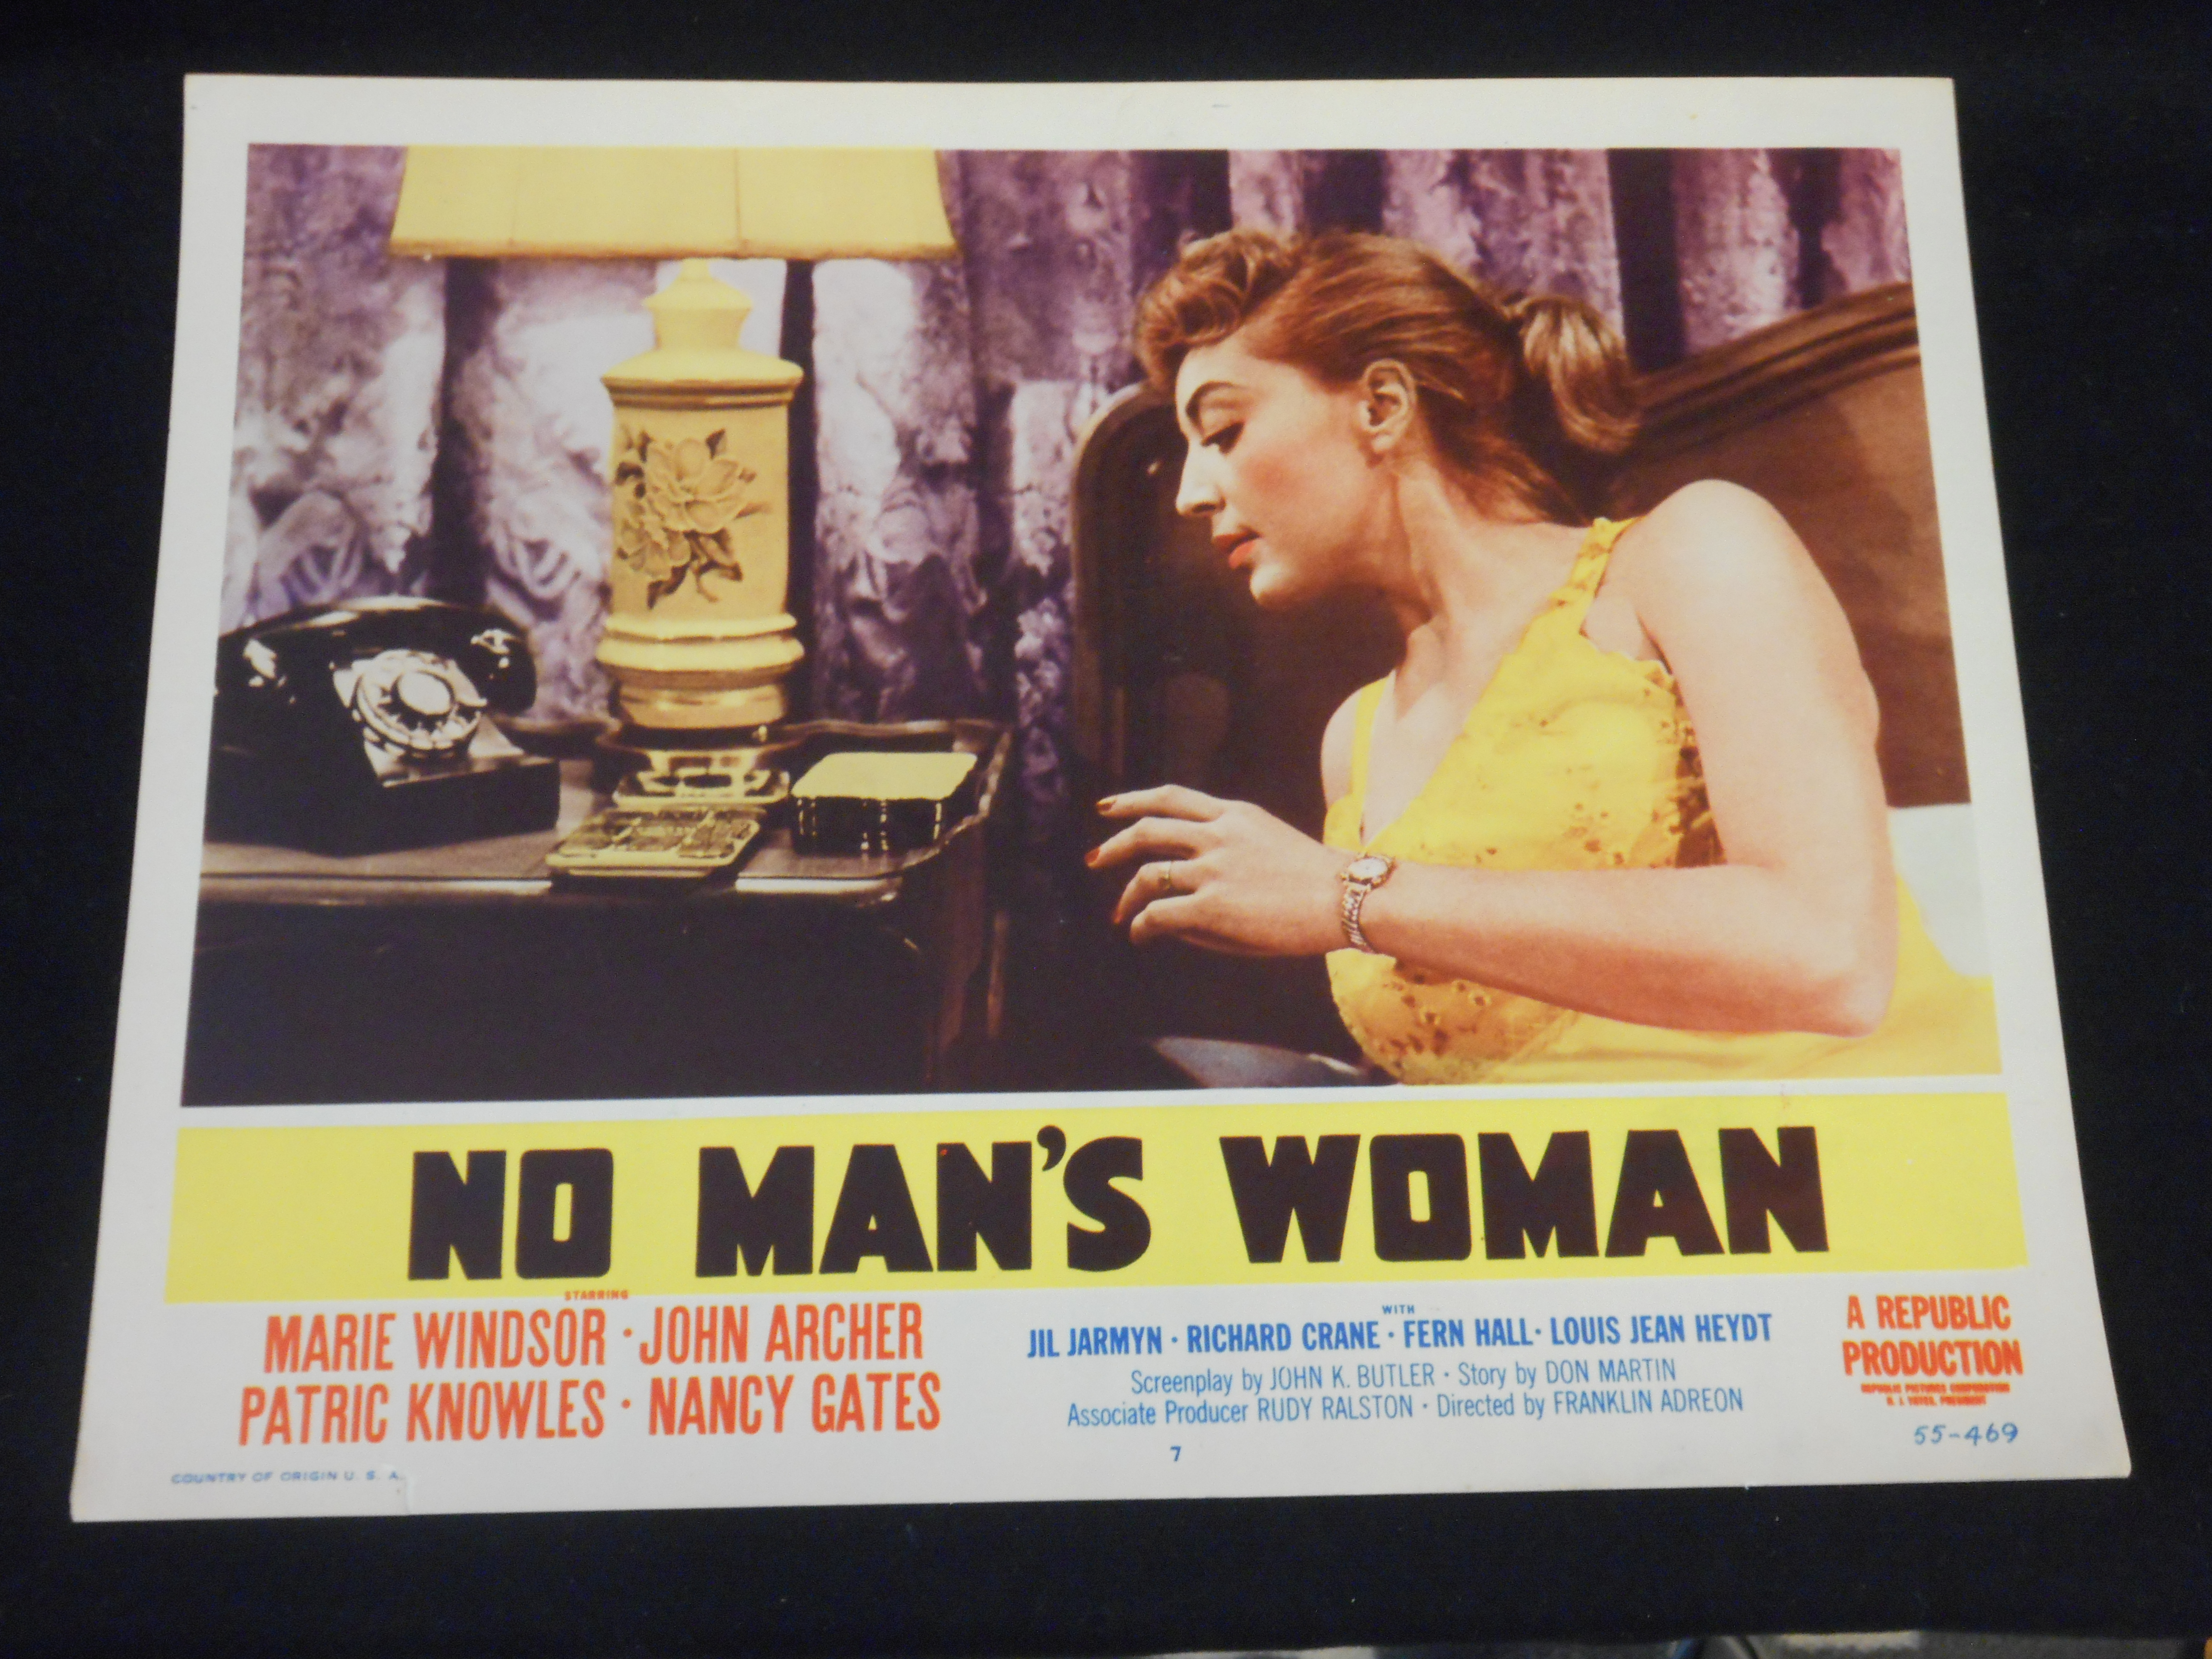 Marie Windsor in No Man's Woman (1955)